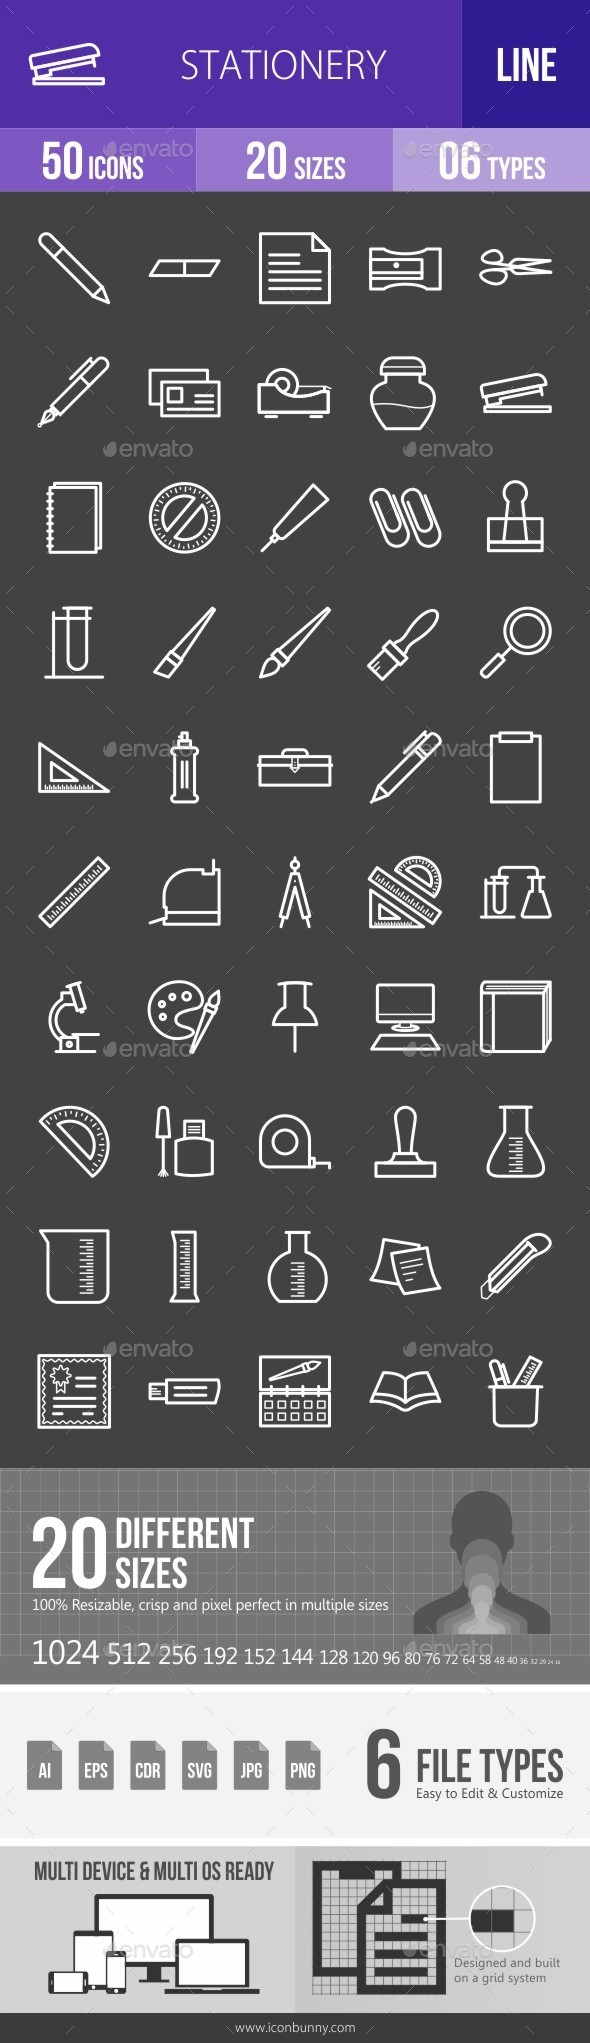 Stationery Line Inverted Icons - Icons